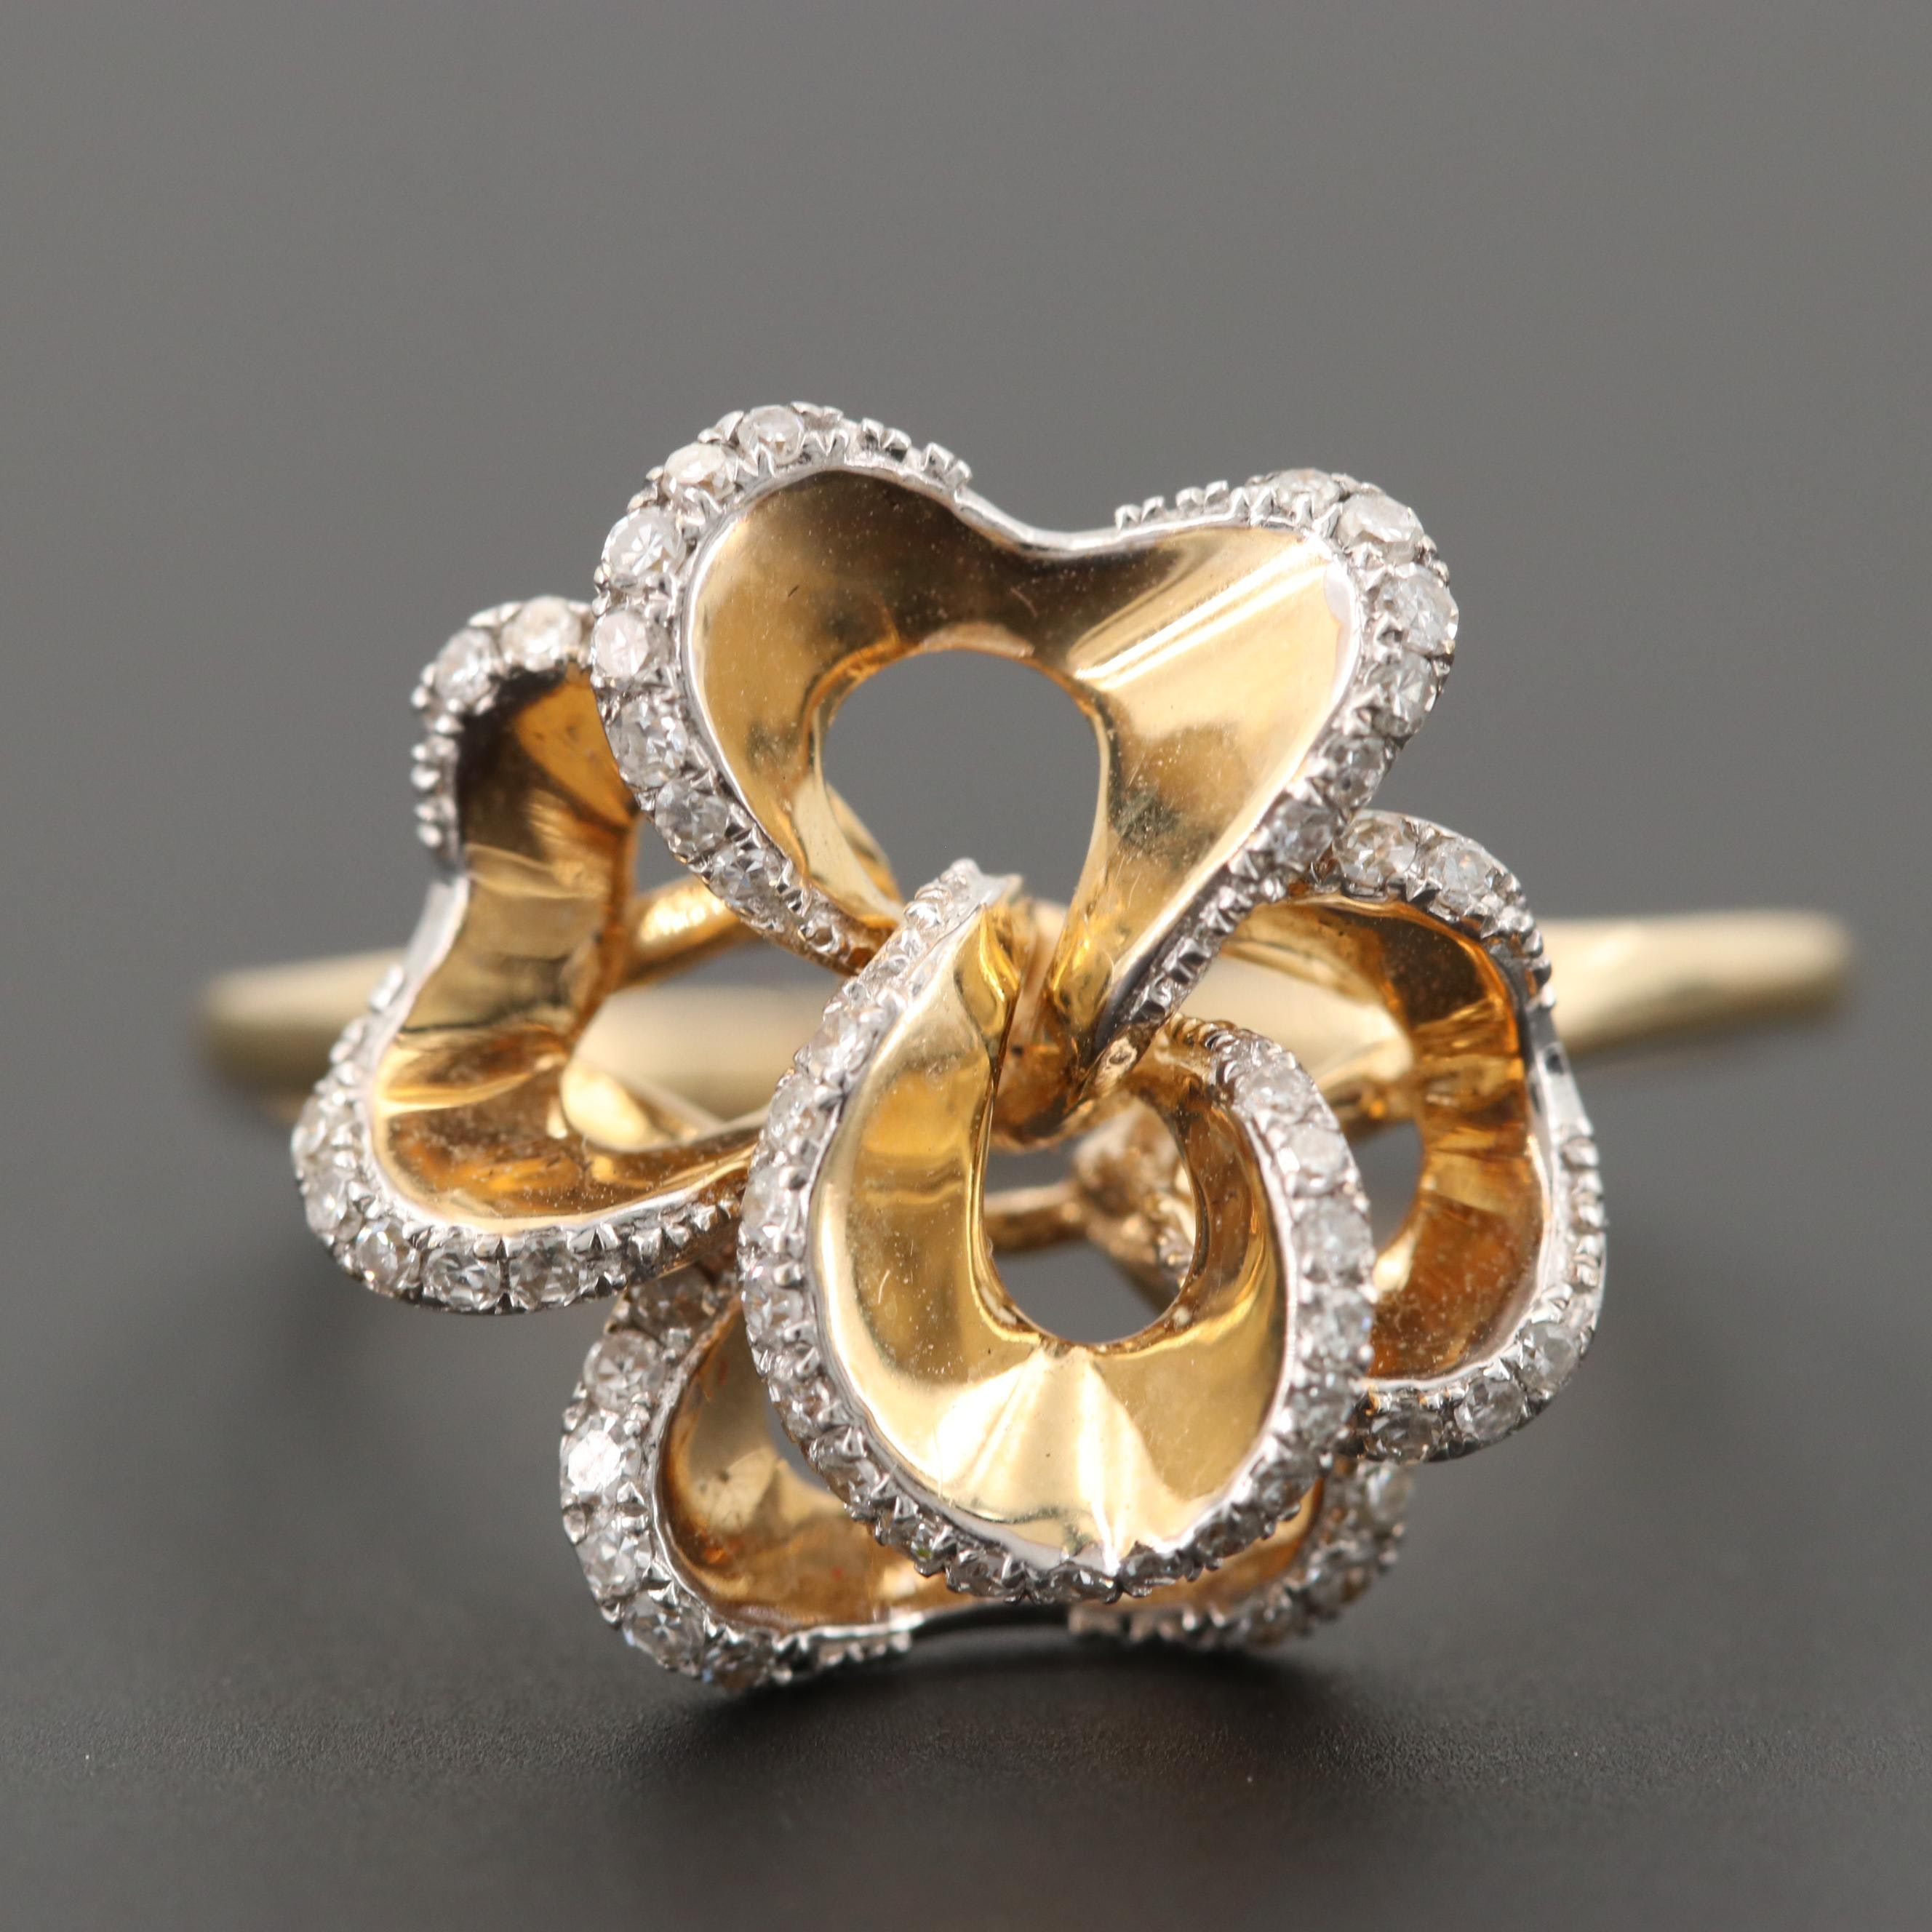 14K Yellow Gold Diamond Flower Ring